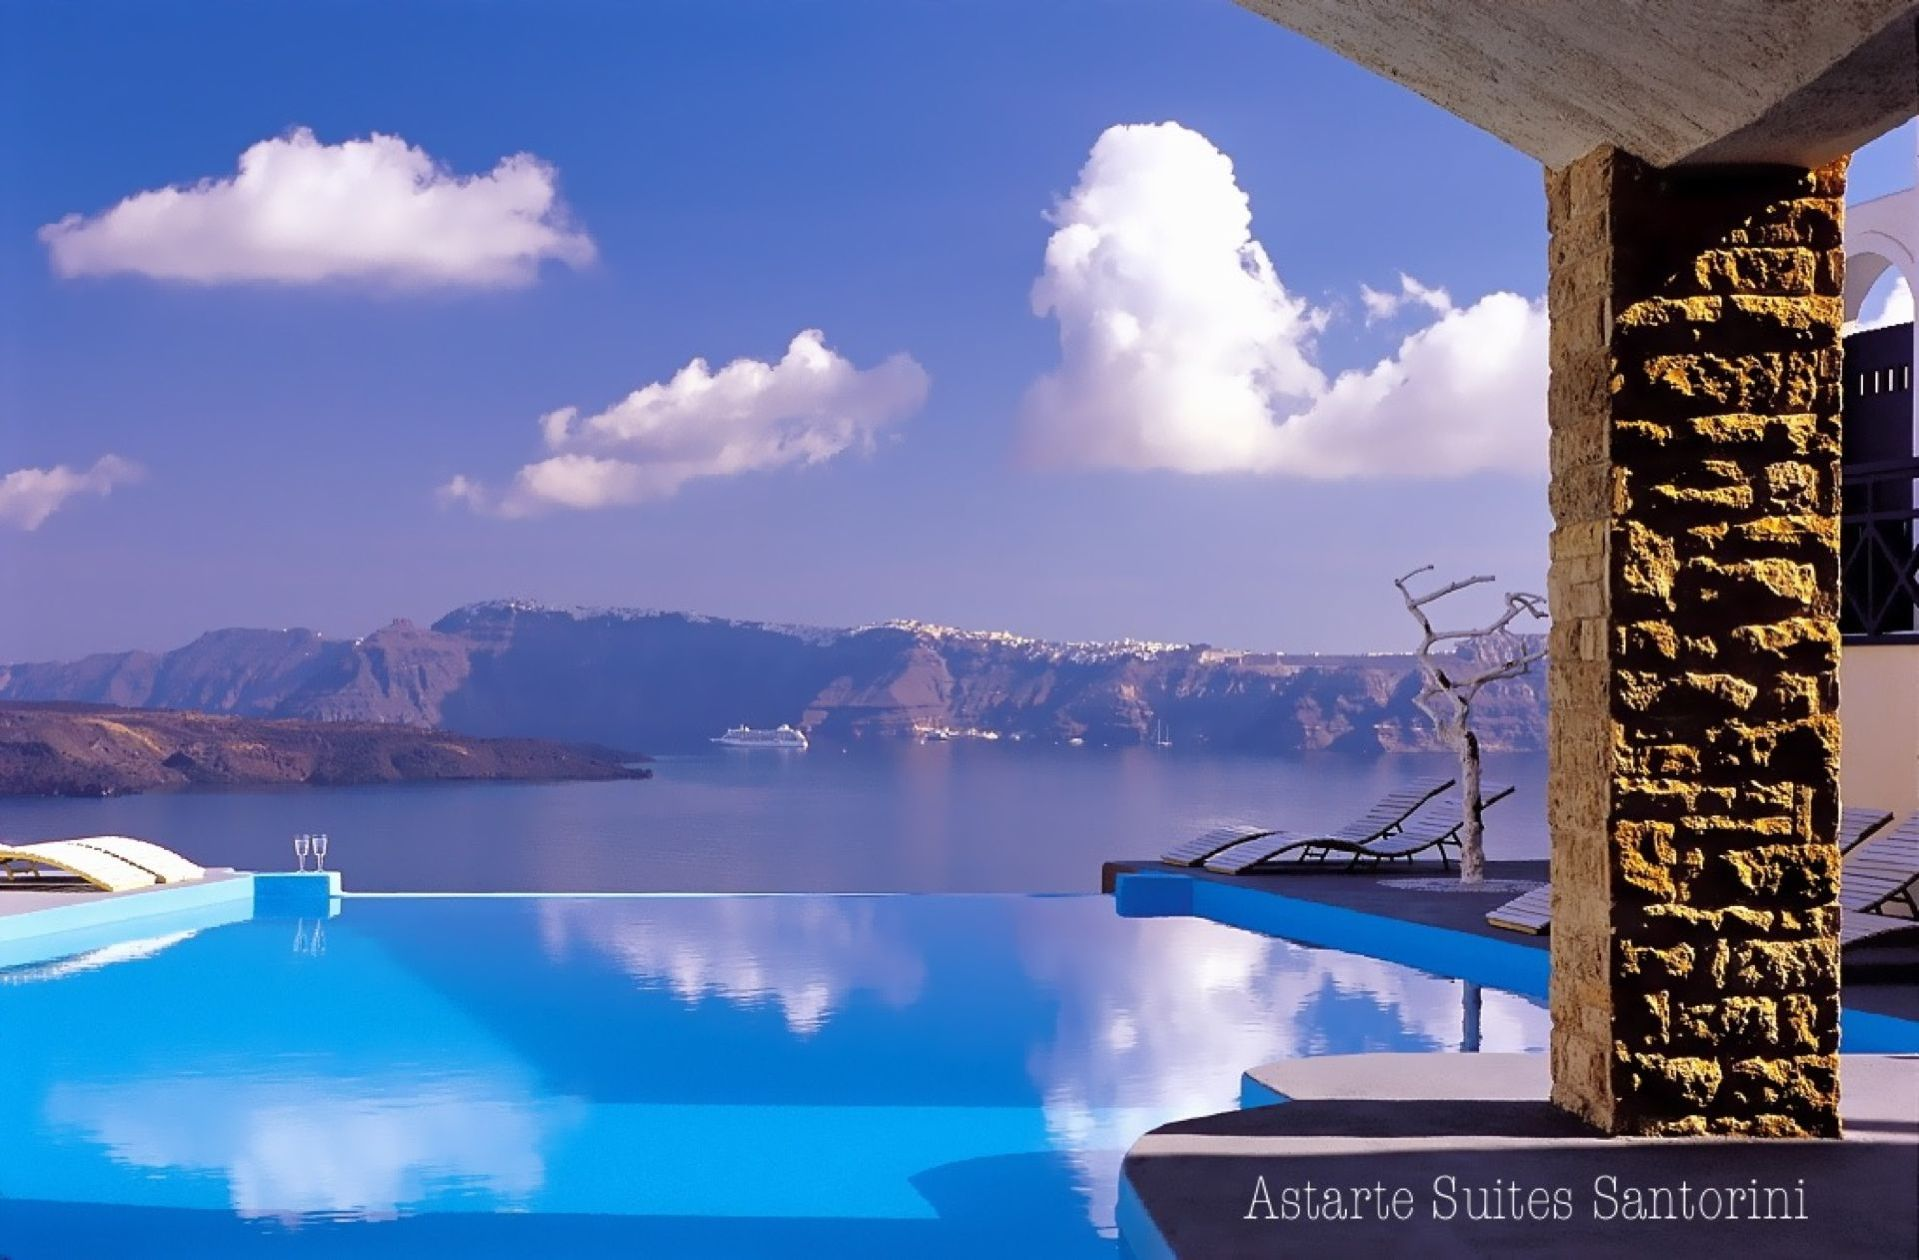 Astarte_Suites_Hotel_Infinity_pool_Santorini_Greece.jpeg